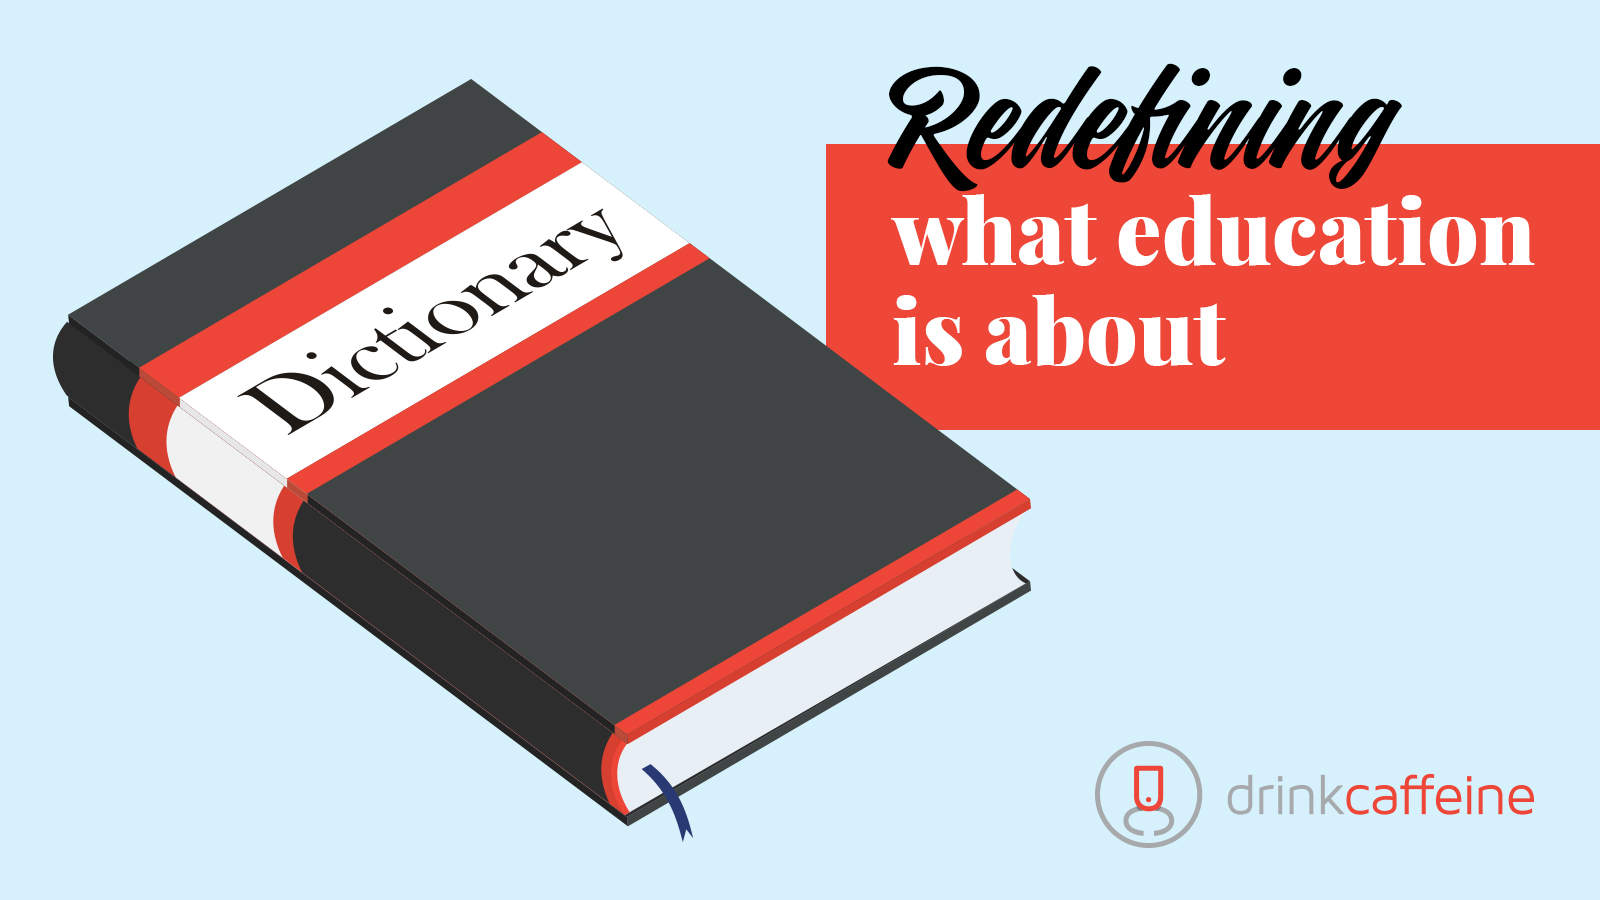 Redefining what education is about blog image